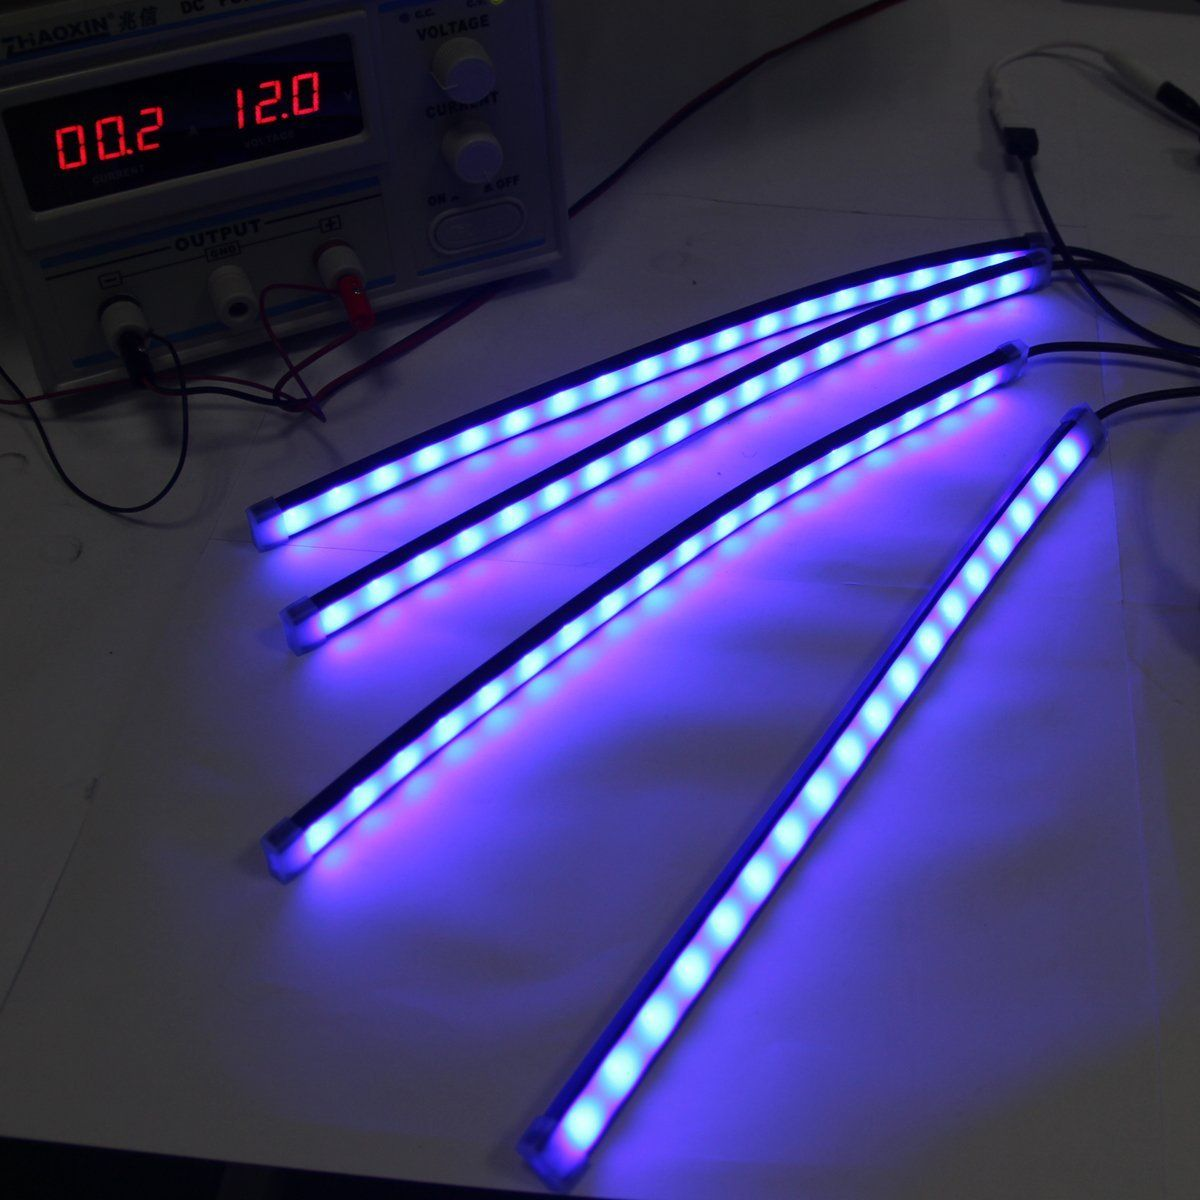 Led Light Strips For Cars Fair Image Result For Interior Led Light Strips For Cars  Car Decorating Inspiration